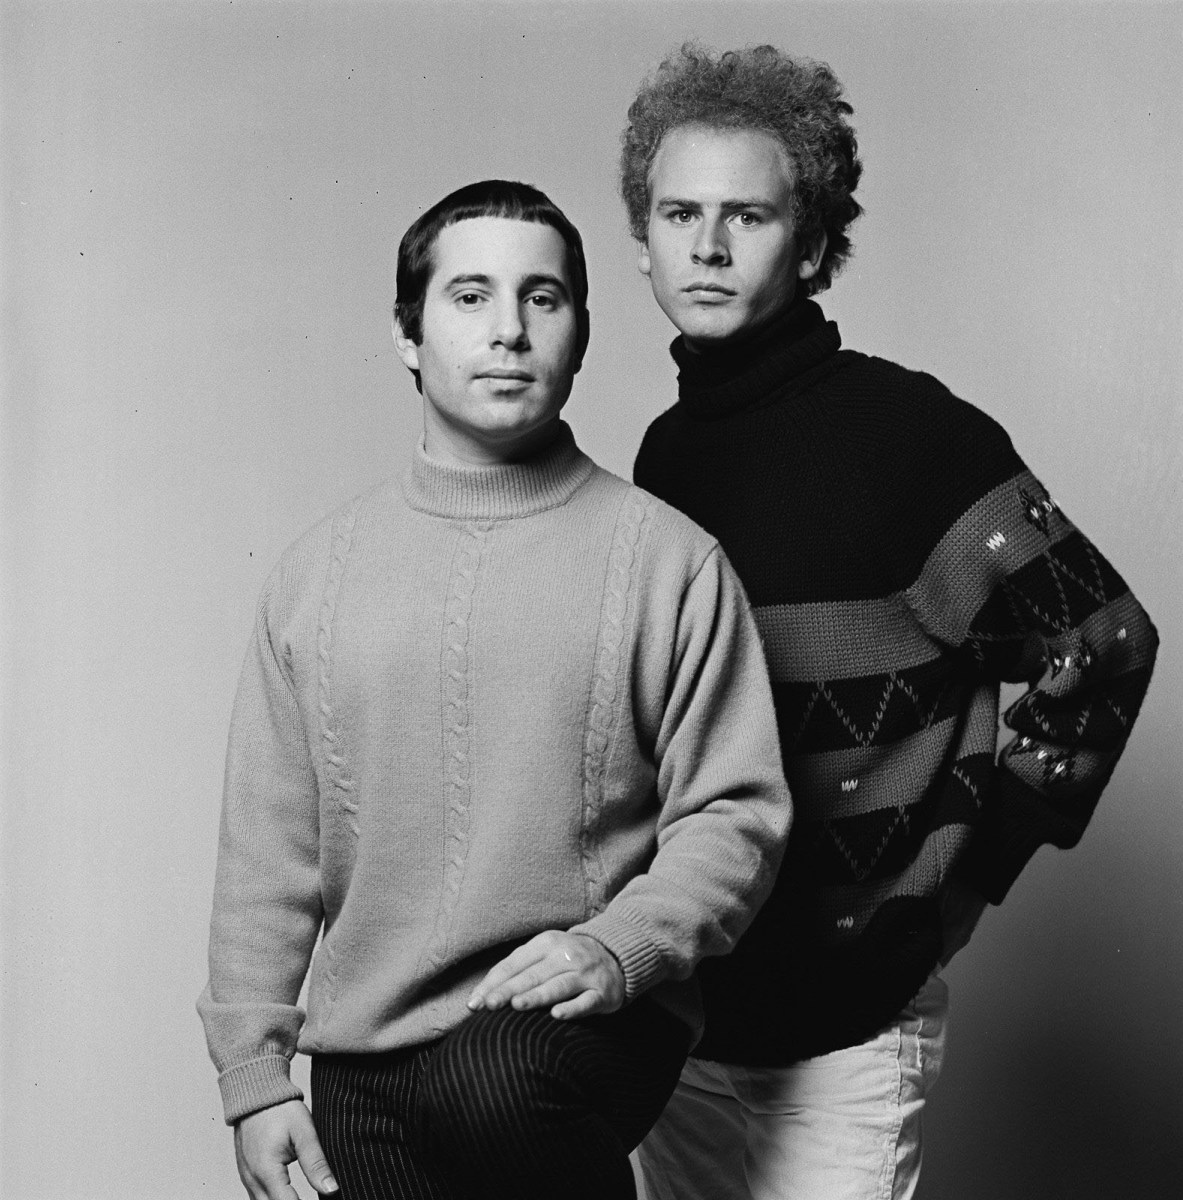 Simon And Garfunkel Rock And Roll Hall Of Fame 25th Anniversary